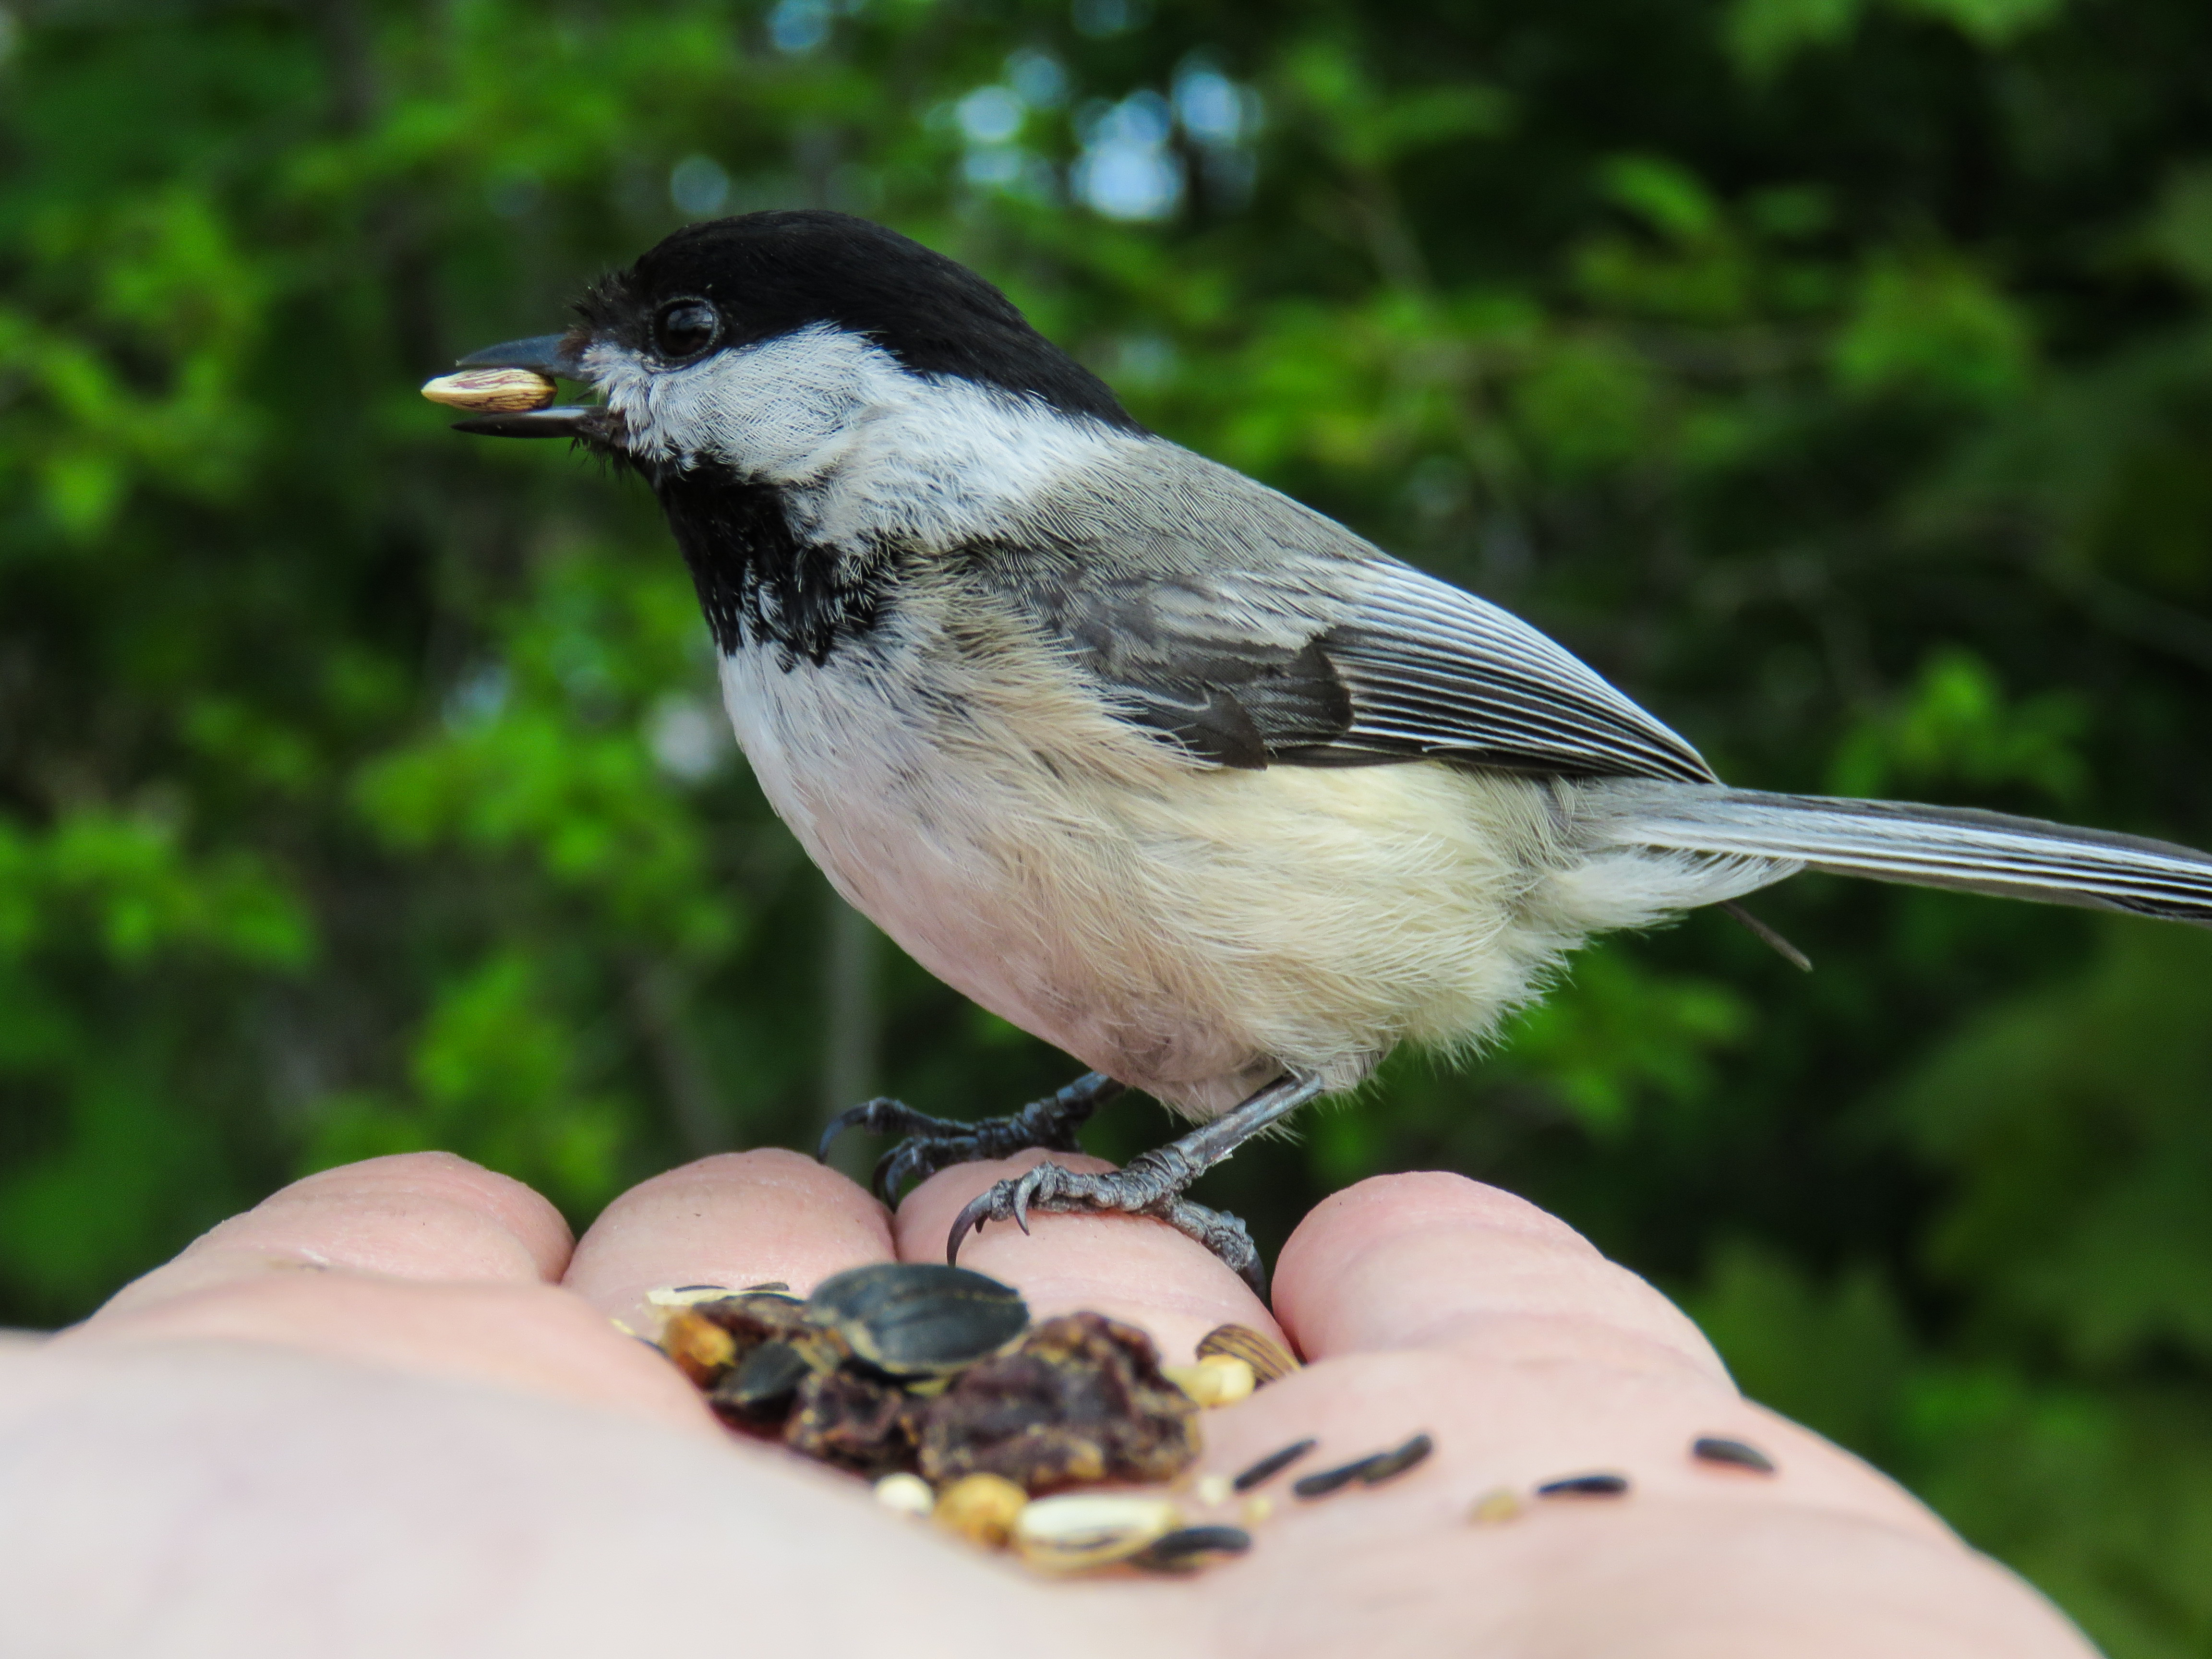 may-18-chickadee2.jpg